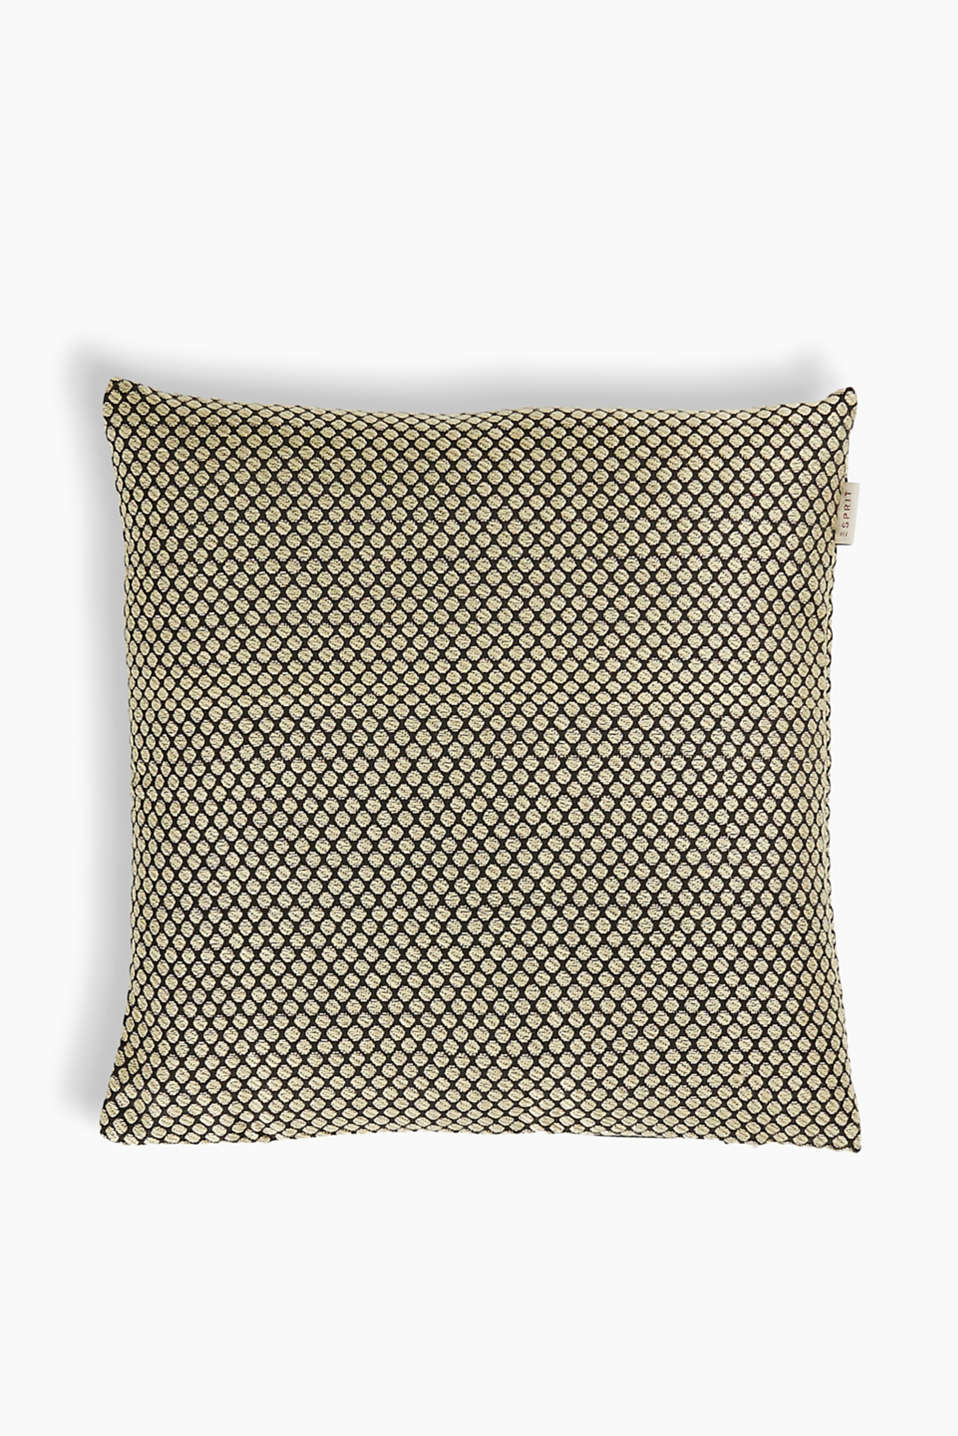 Esprit - Woven cushion cover + golden polka dots